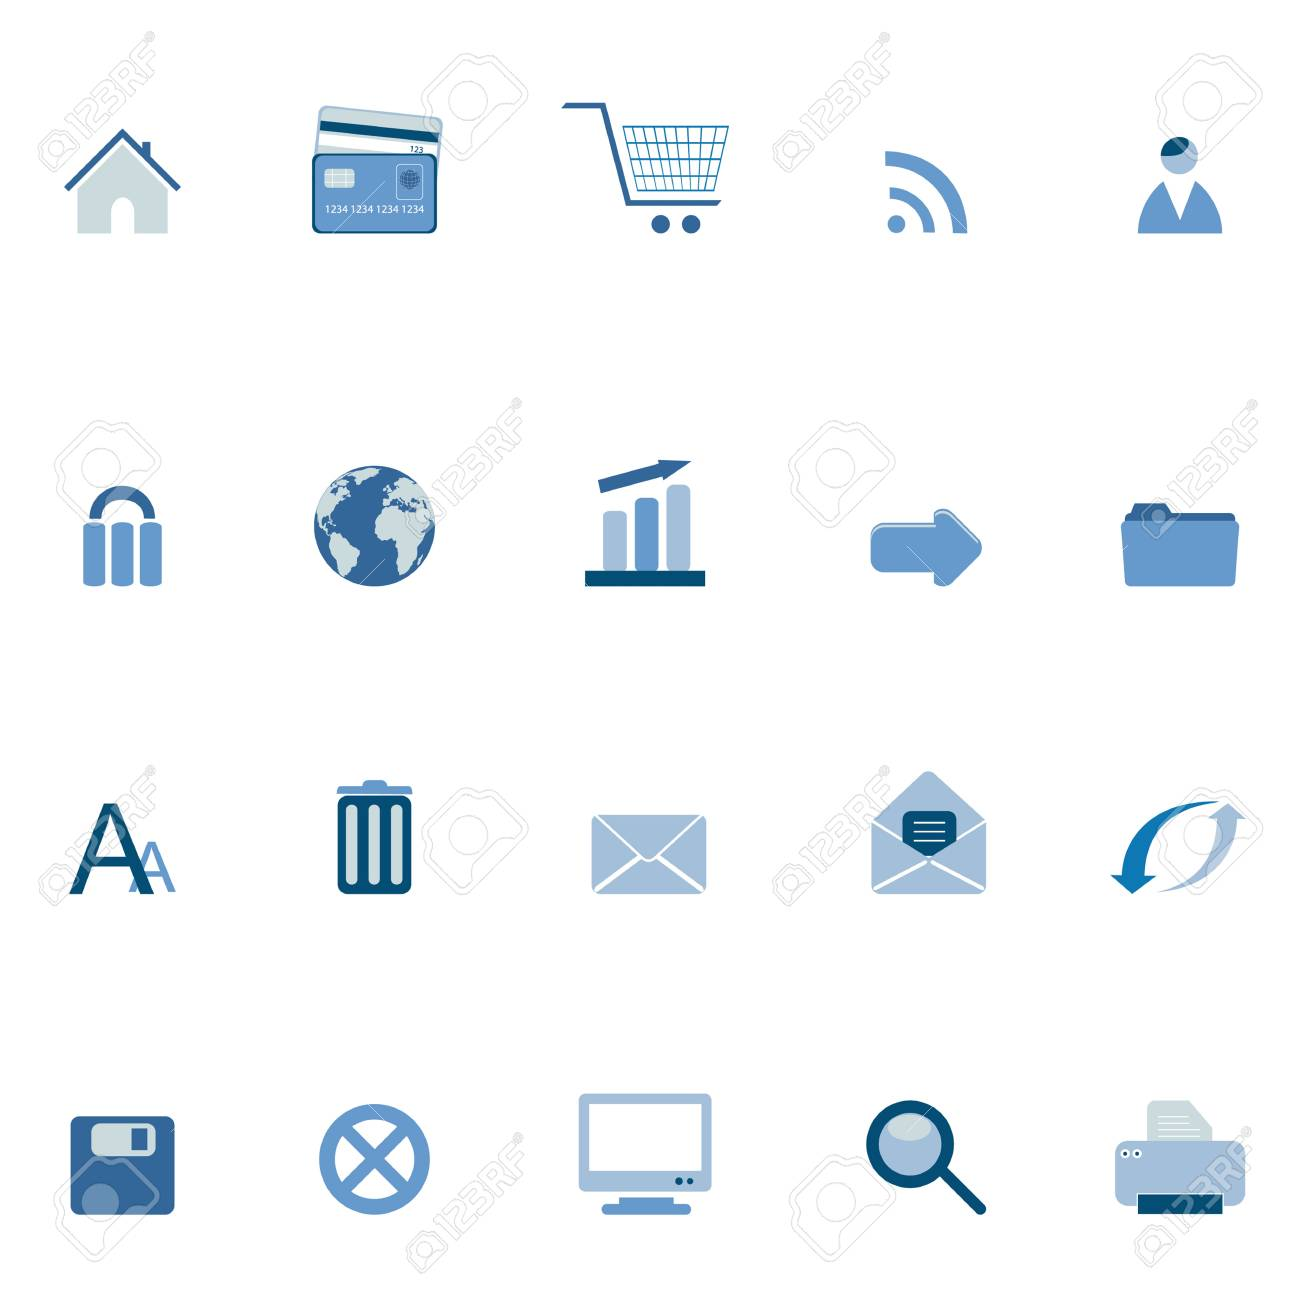 Internet and web symbols icon set Stock Vector - 12305291